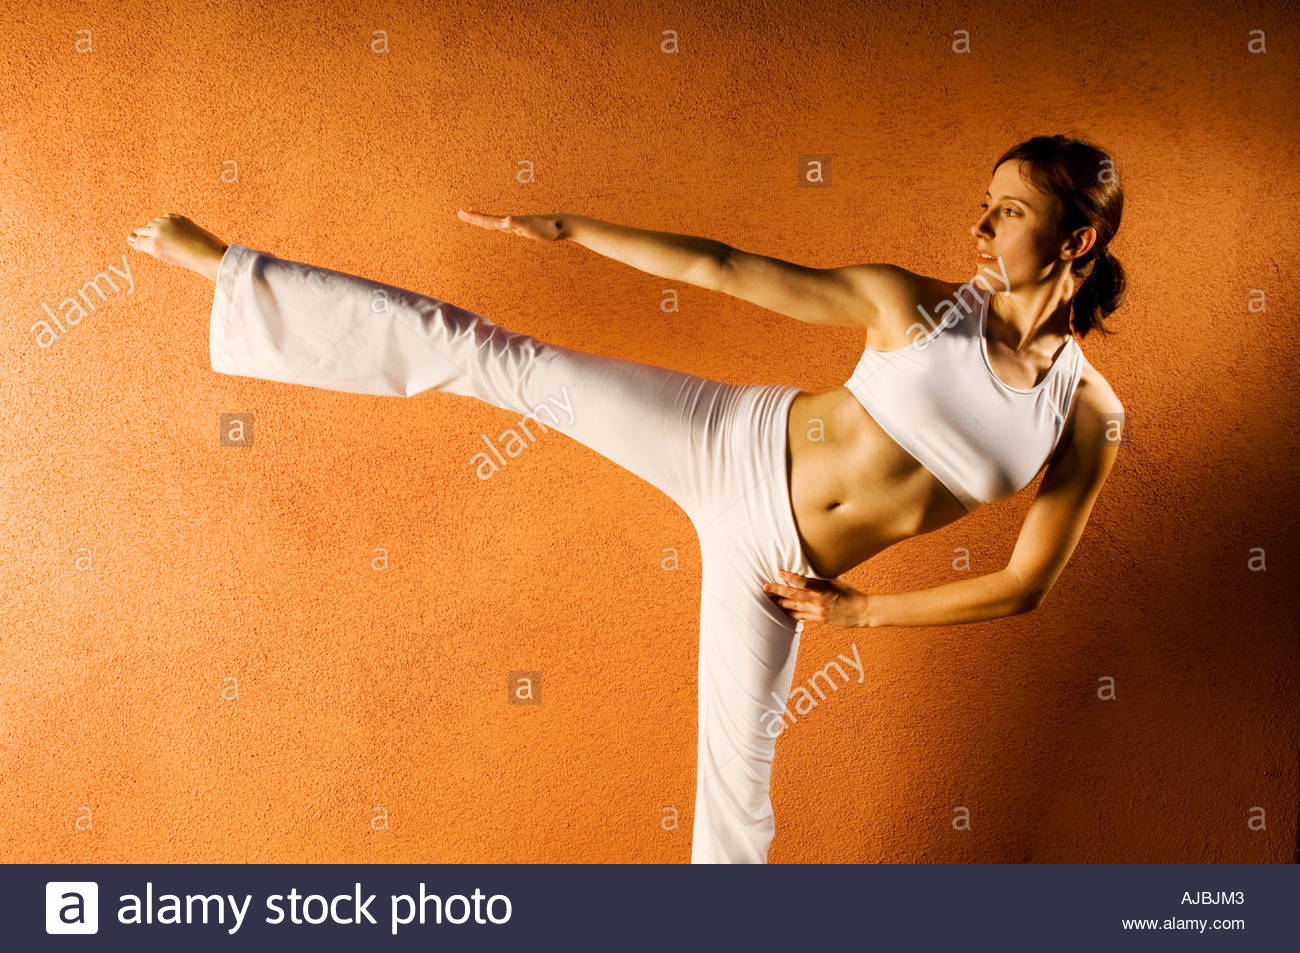 Strong Woman Yoga balance pose with strength beauty balance and grace  in front of Terra-cotta color plaster  wall - Stock Image